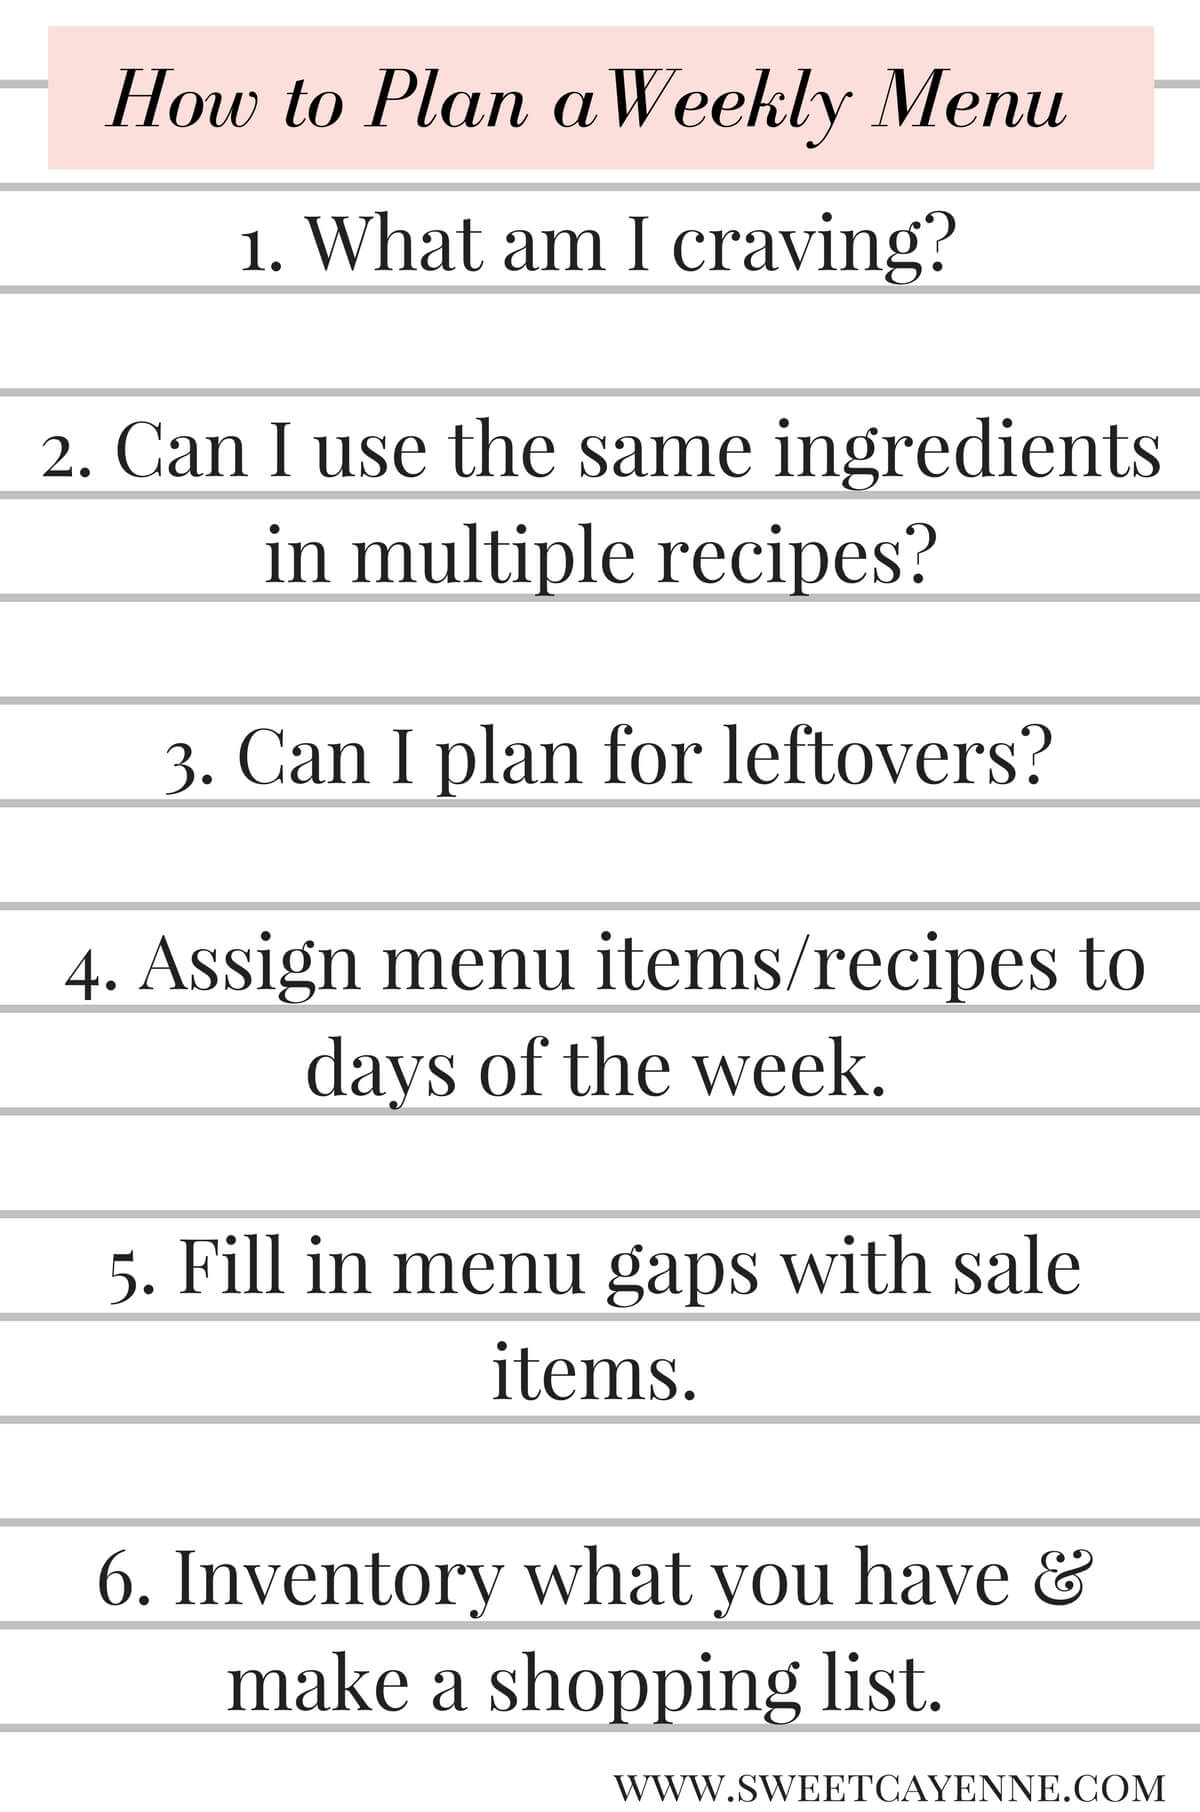 Meal Planning 101 - see my tips, tricks and strategies in this tutorial and plan a week of food you love! Menu planning and prep tips